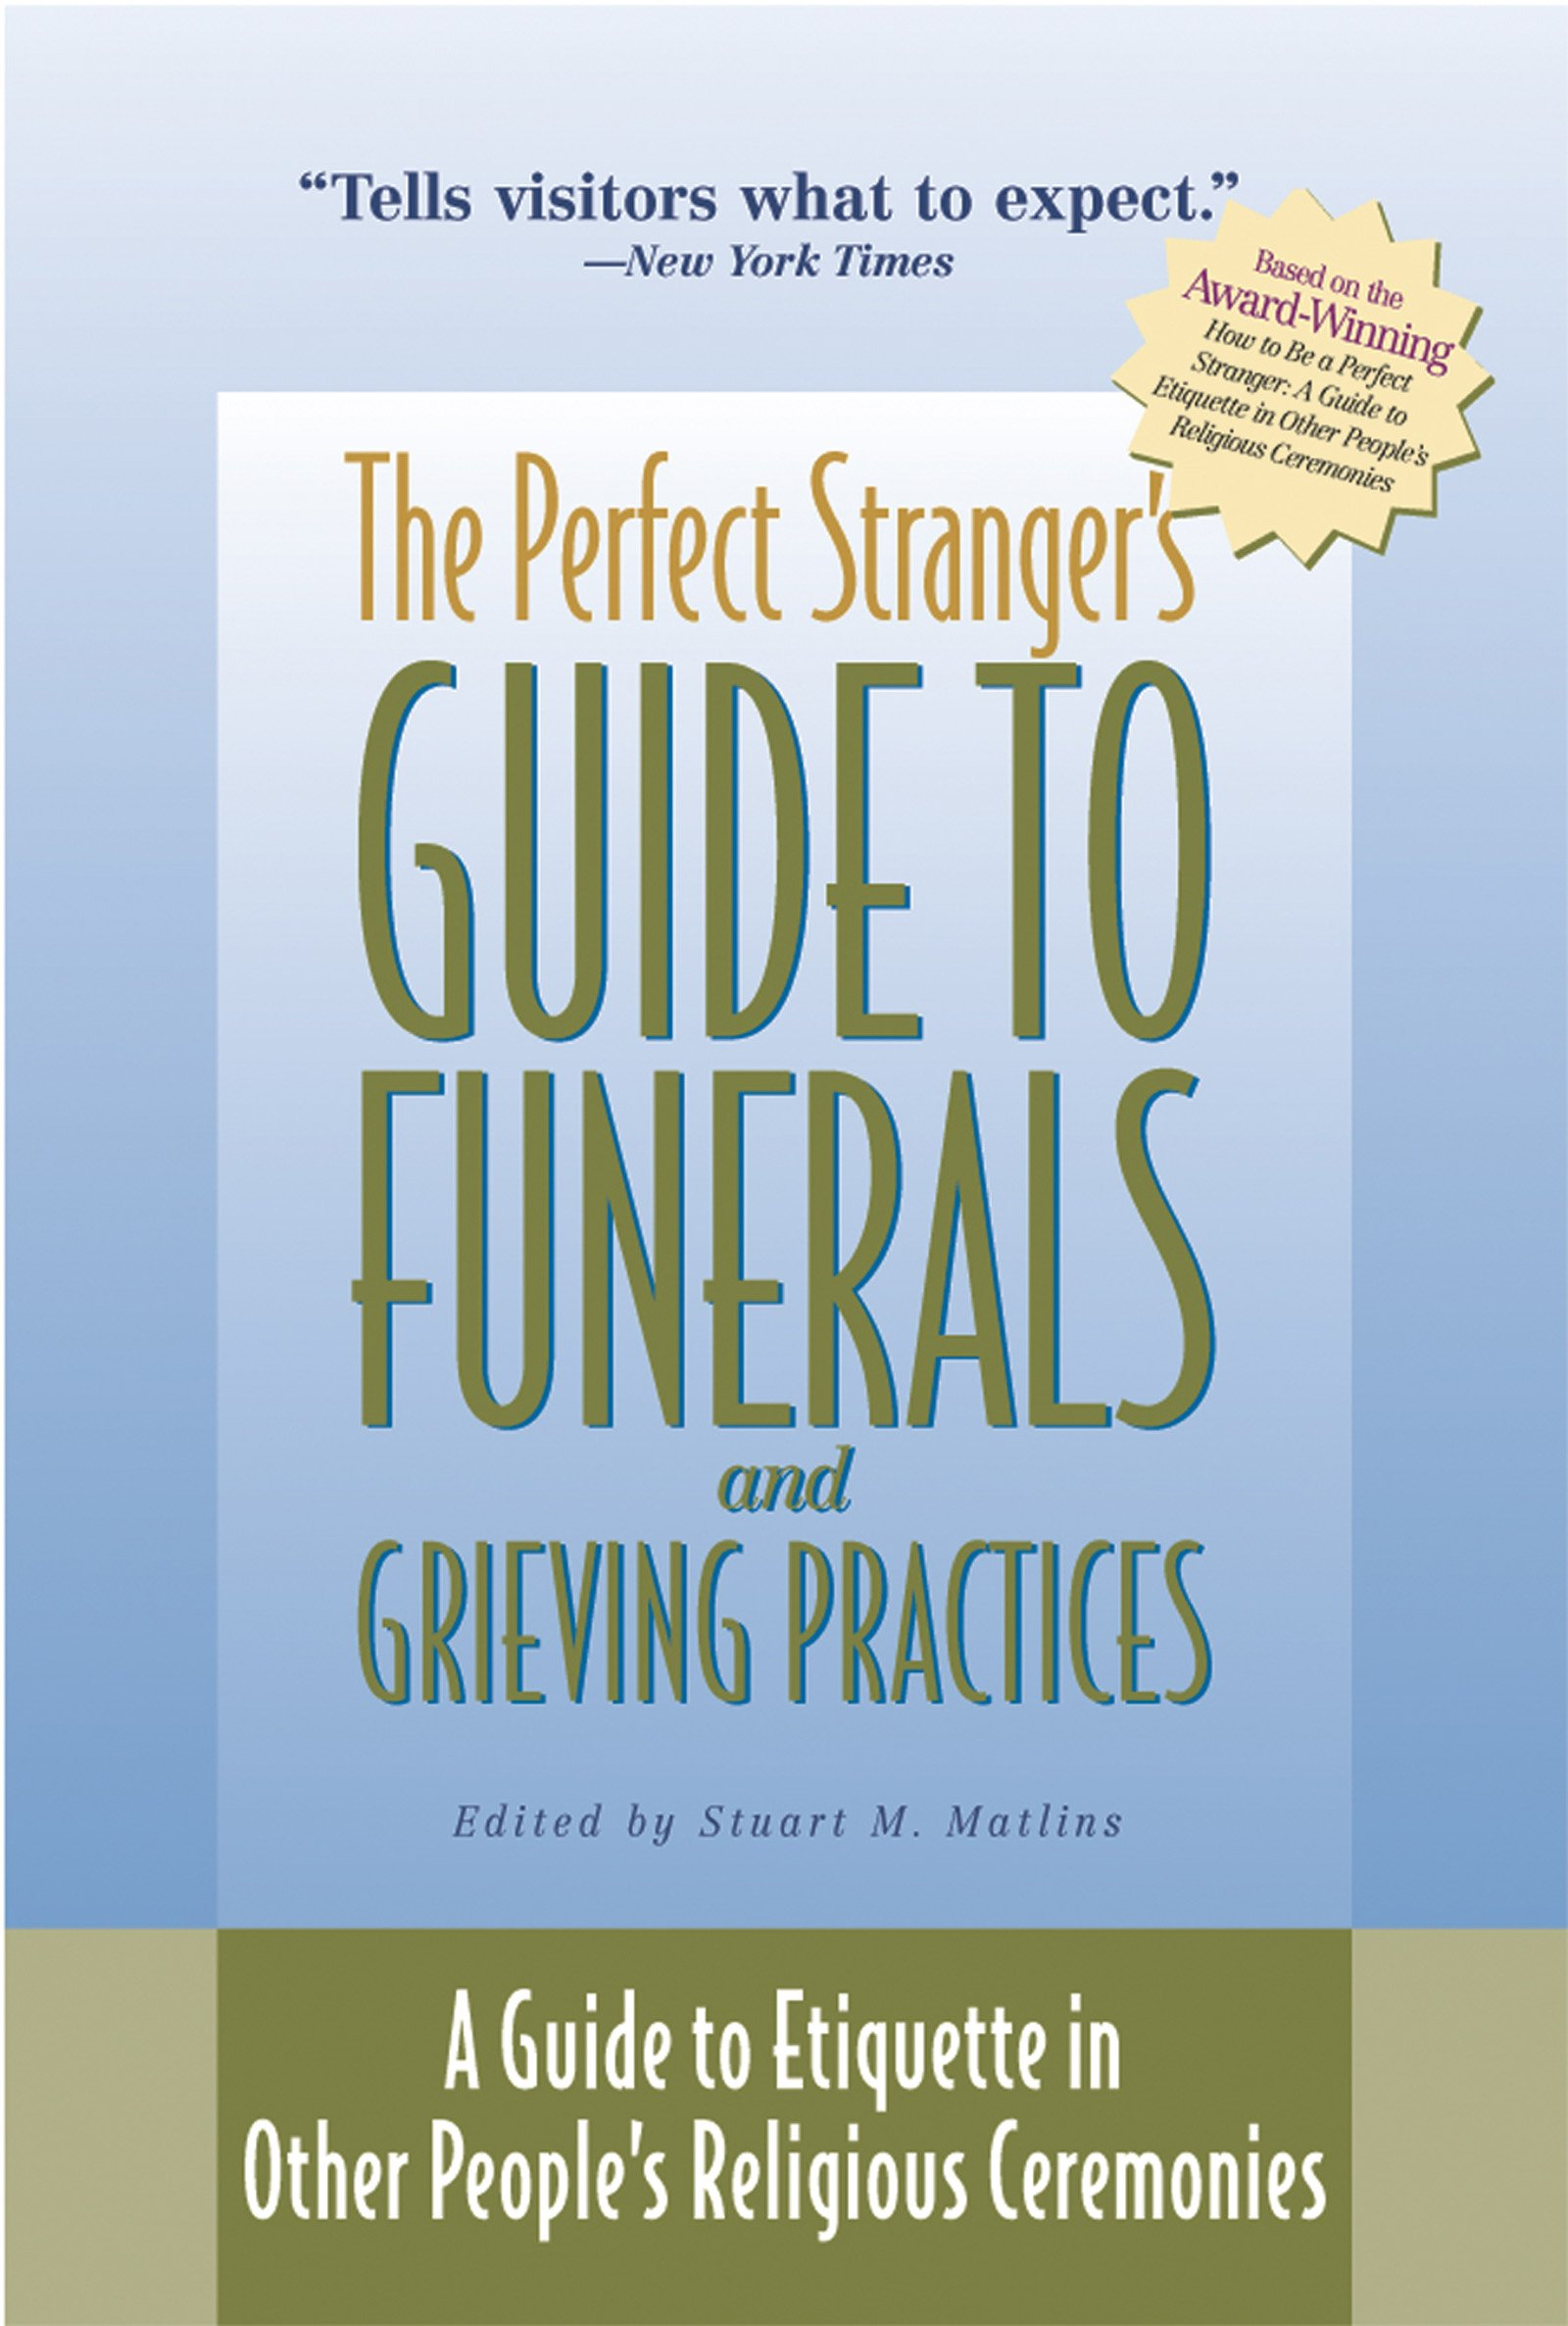 The perfect strangers guide to funerals and grieving practices a the perfect strangers guide to funerals and grieving practices a guide to etiquette in other peoples religious ceremonies stuart m matlins izmirmasajfo